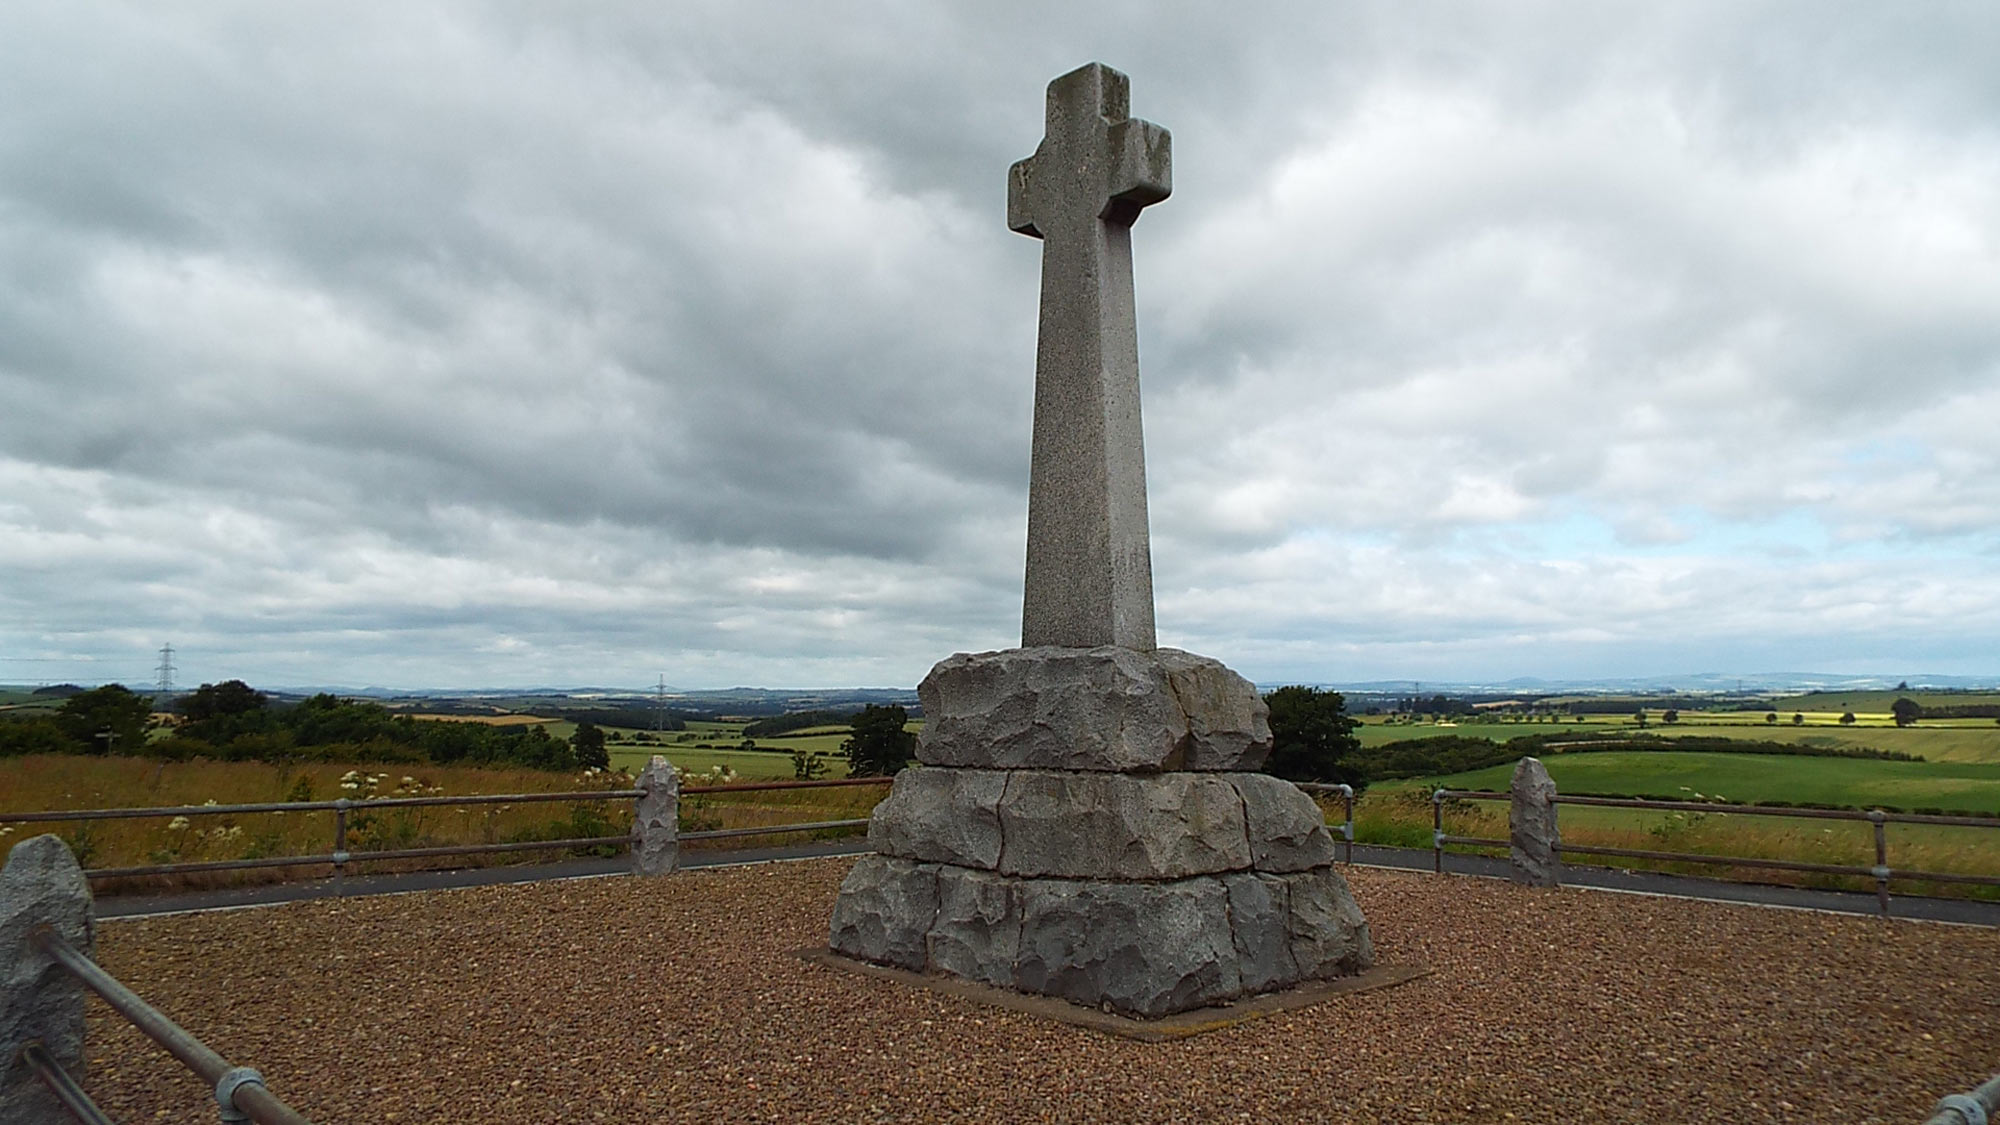 Battle of Flodden: The memorial cross positioned at the centre of the English position at the Battle of Flodden 9th September 1513